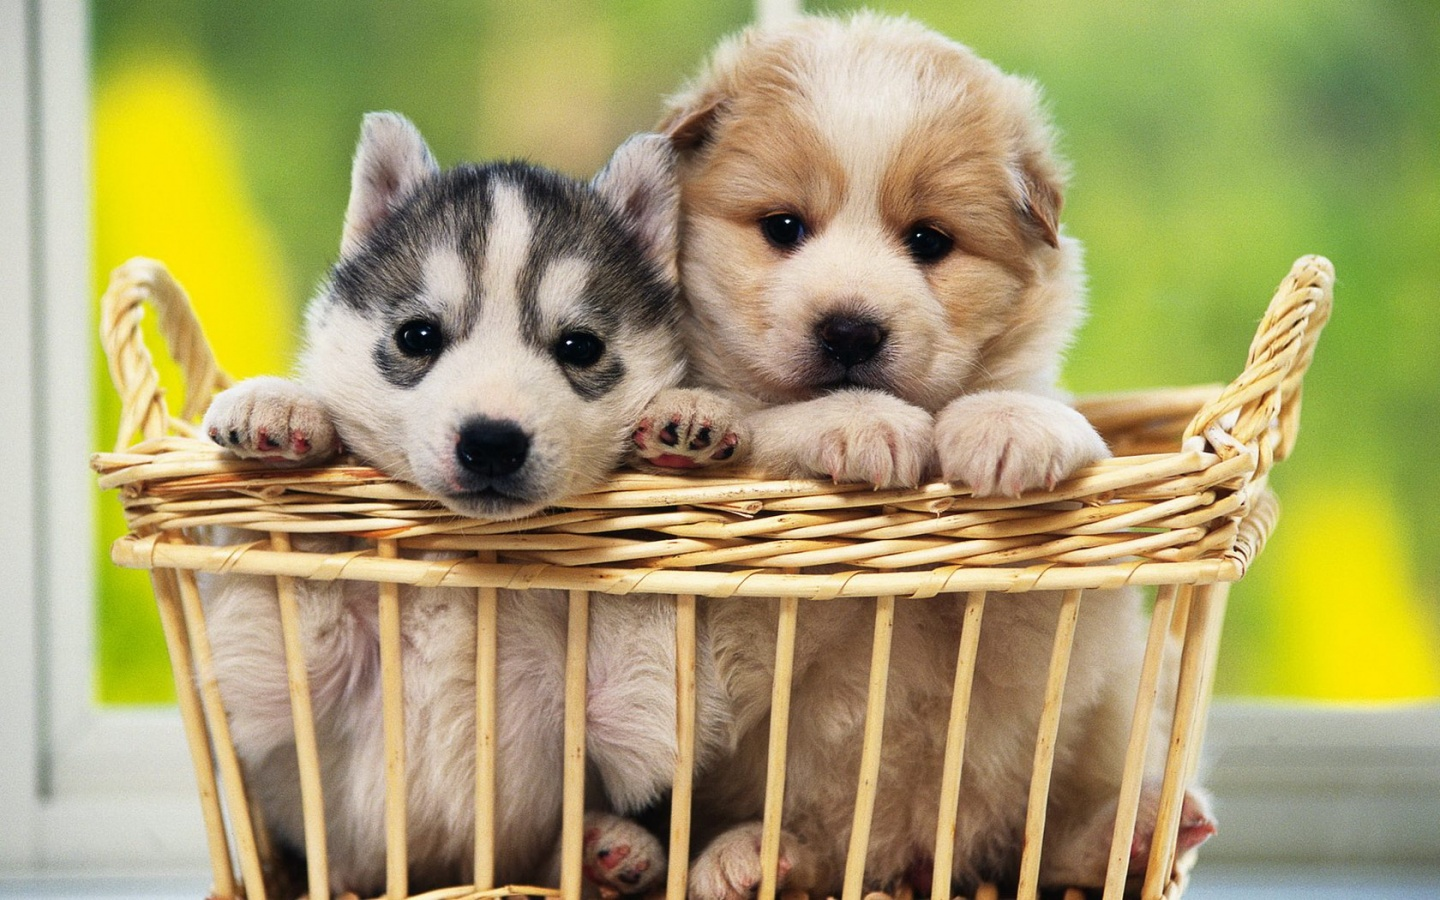 Dogs HD Wallpapers Cute Dogs Wallpapers HD, Cute Dogs Wallpapers, Cute